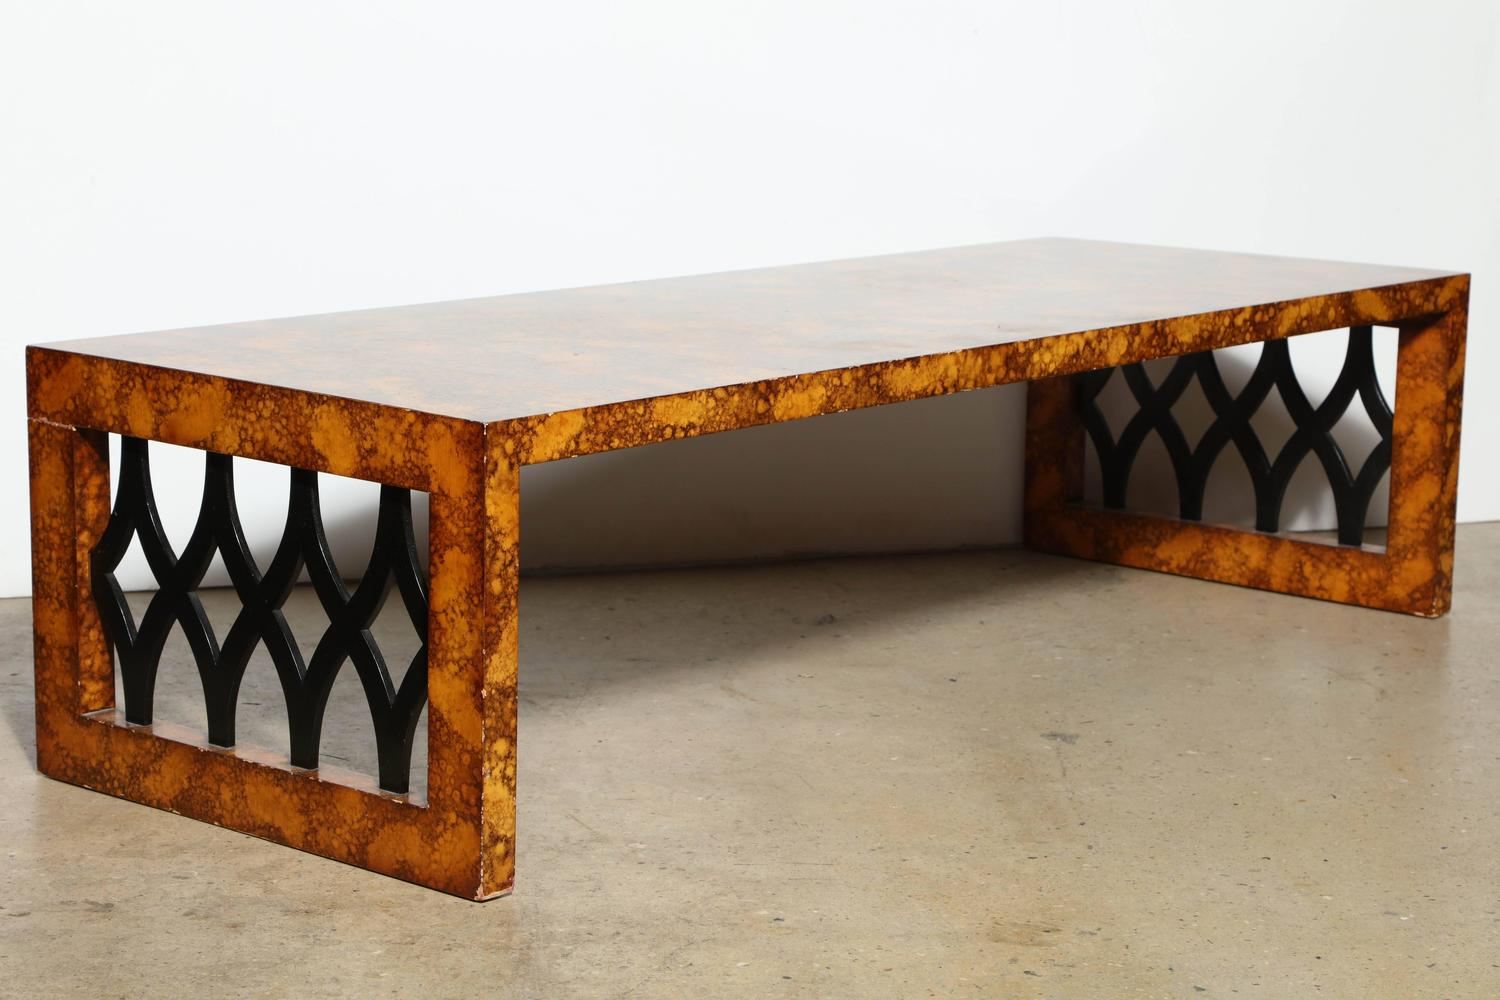 1961 Tommi Parzinger For Charak Oil Dropped Lattice Coffee Table For Sale At 1stdibs